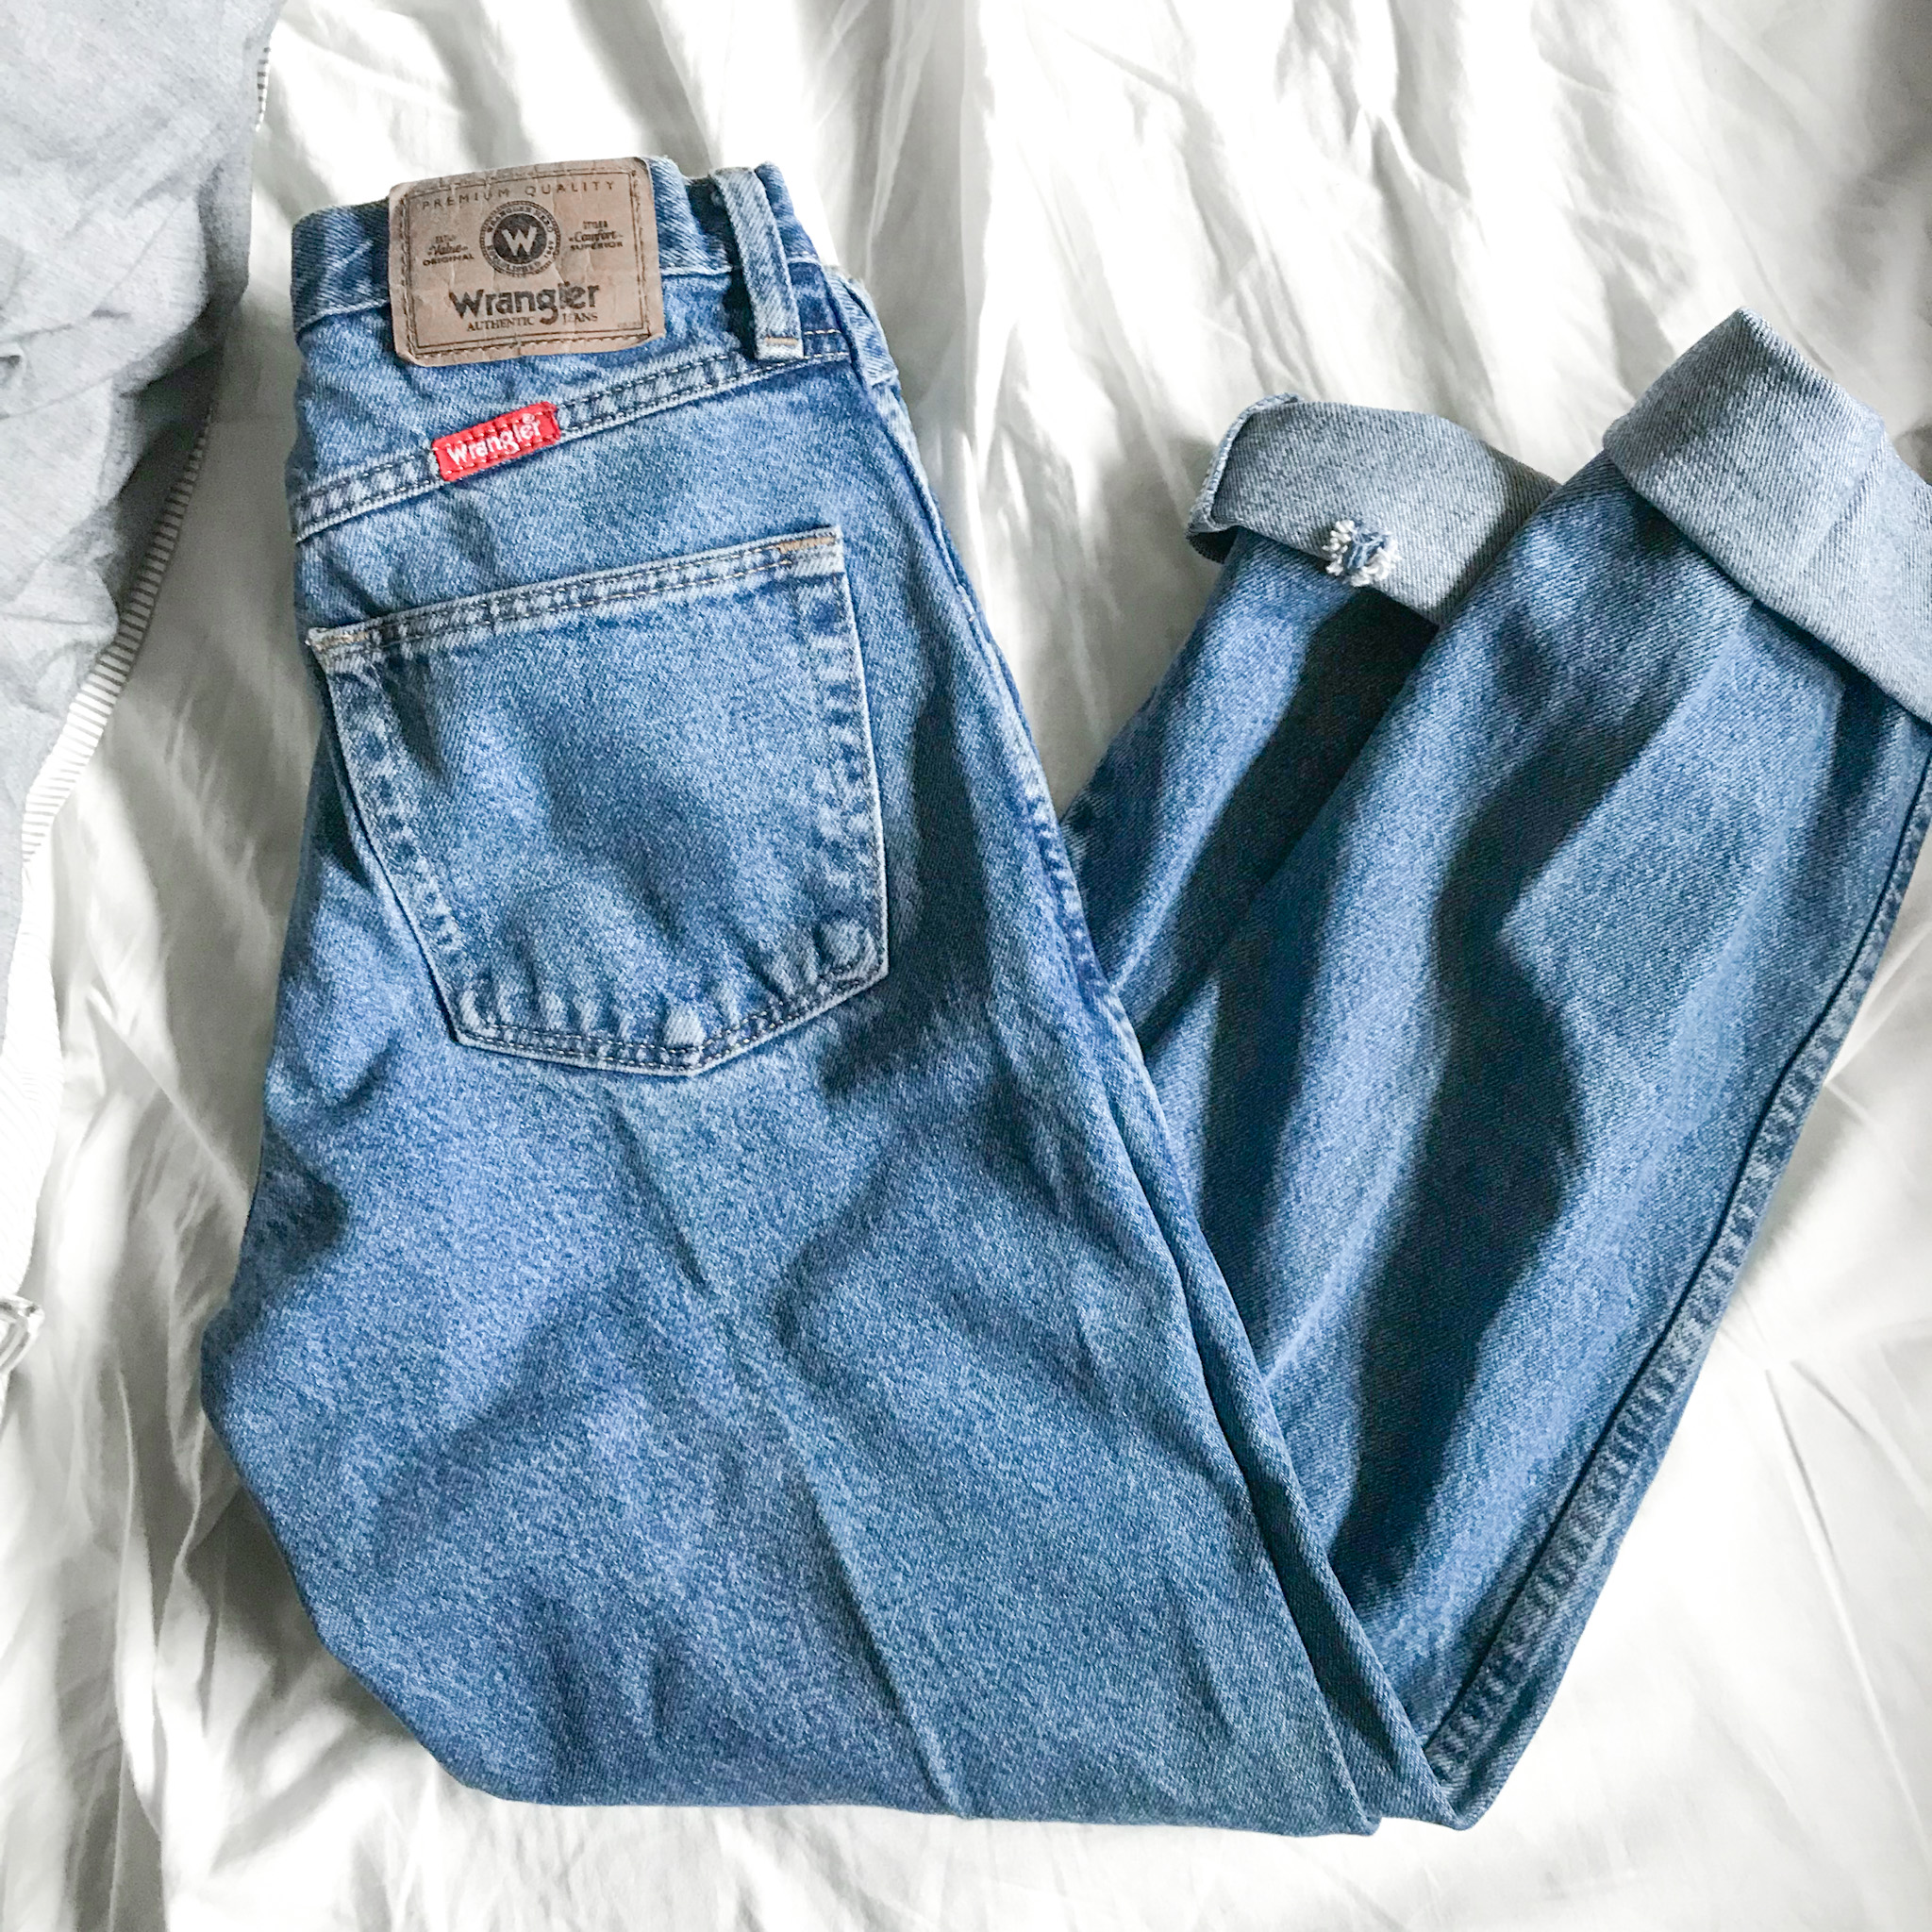 Wrangler Jeans Why You Should Shop Second Hand